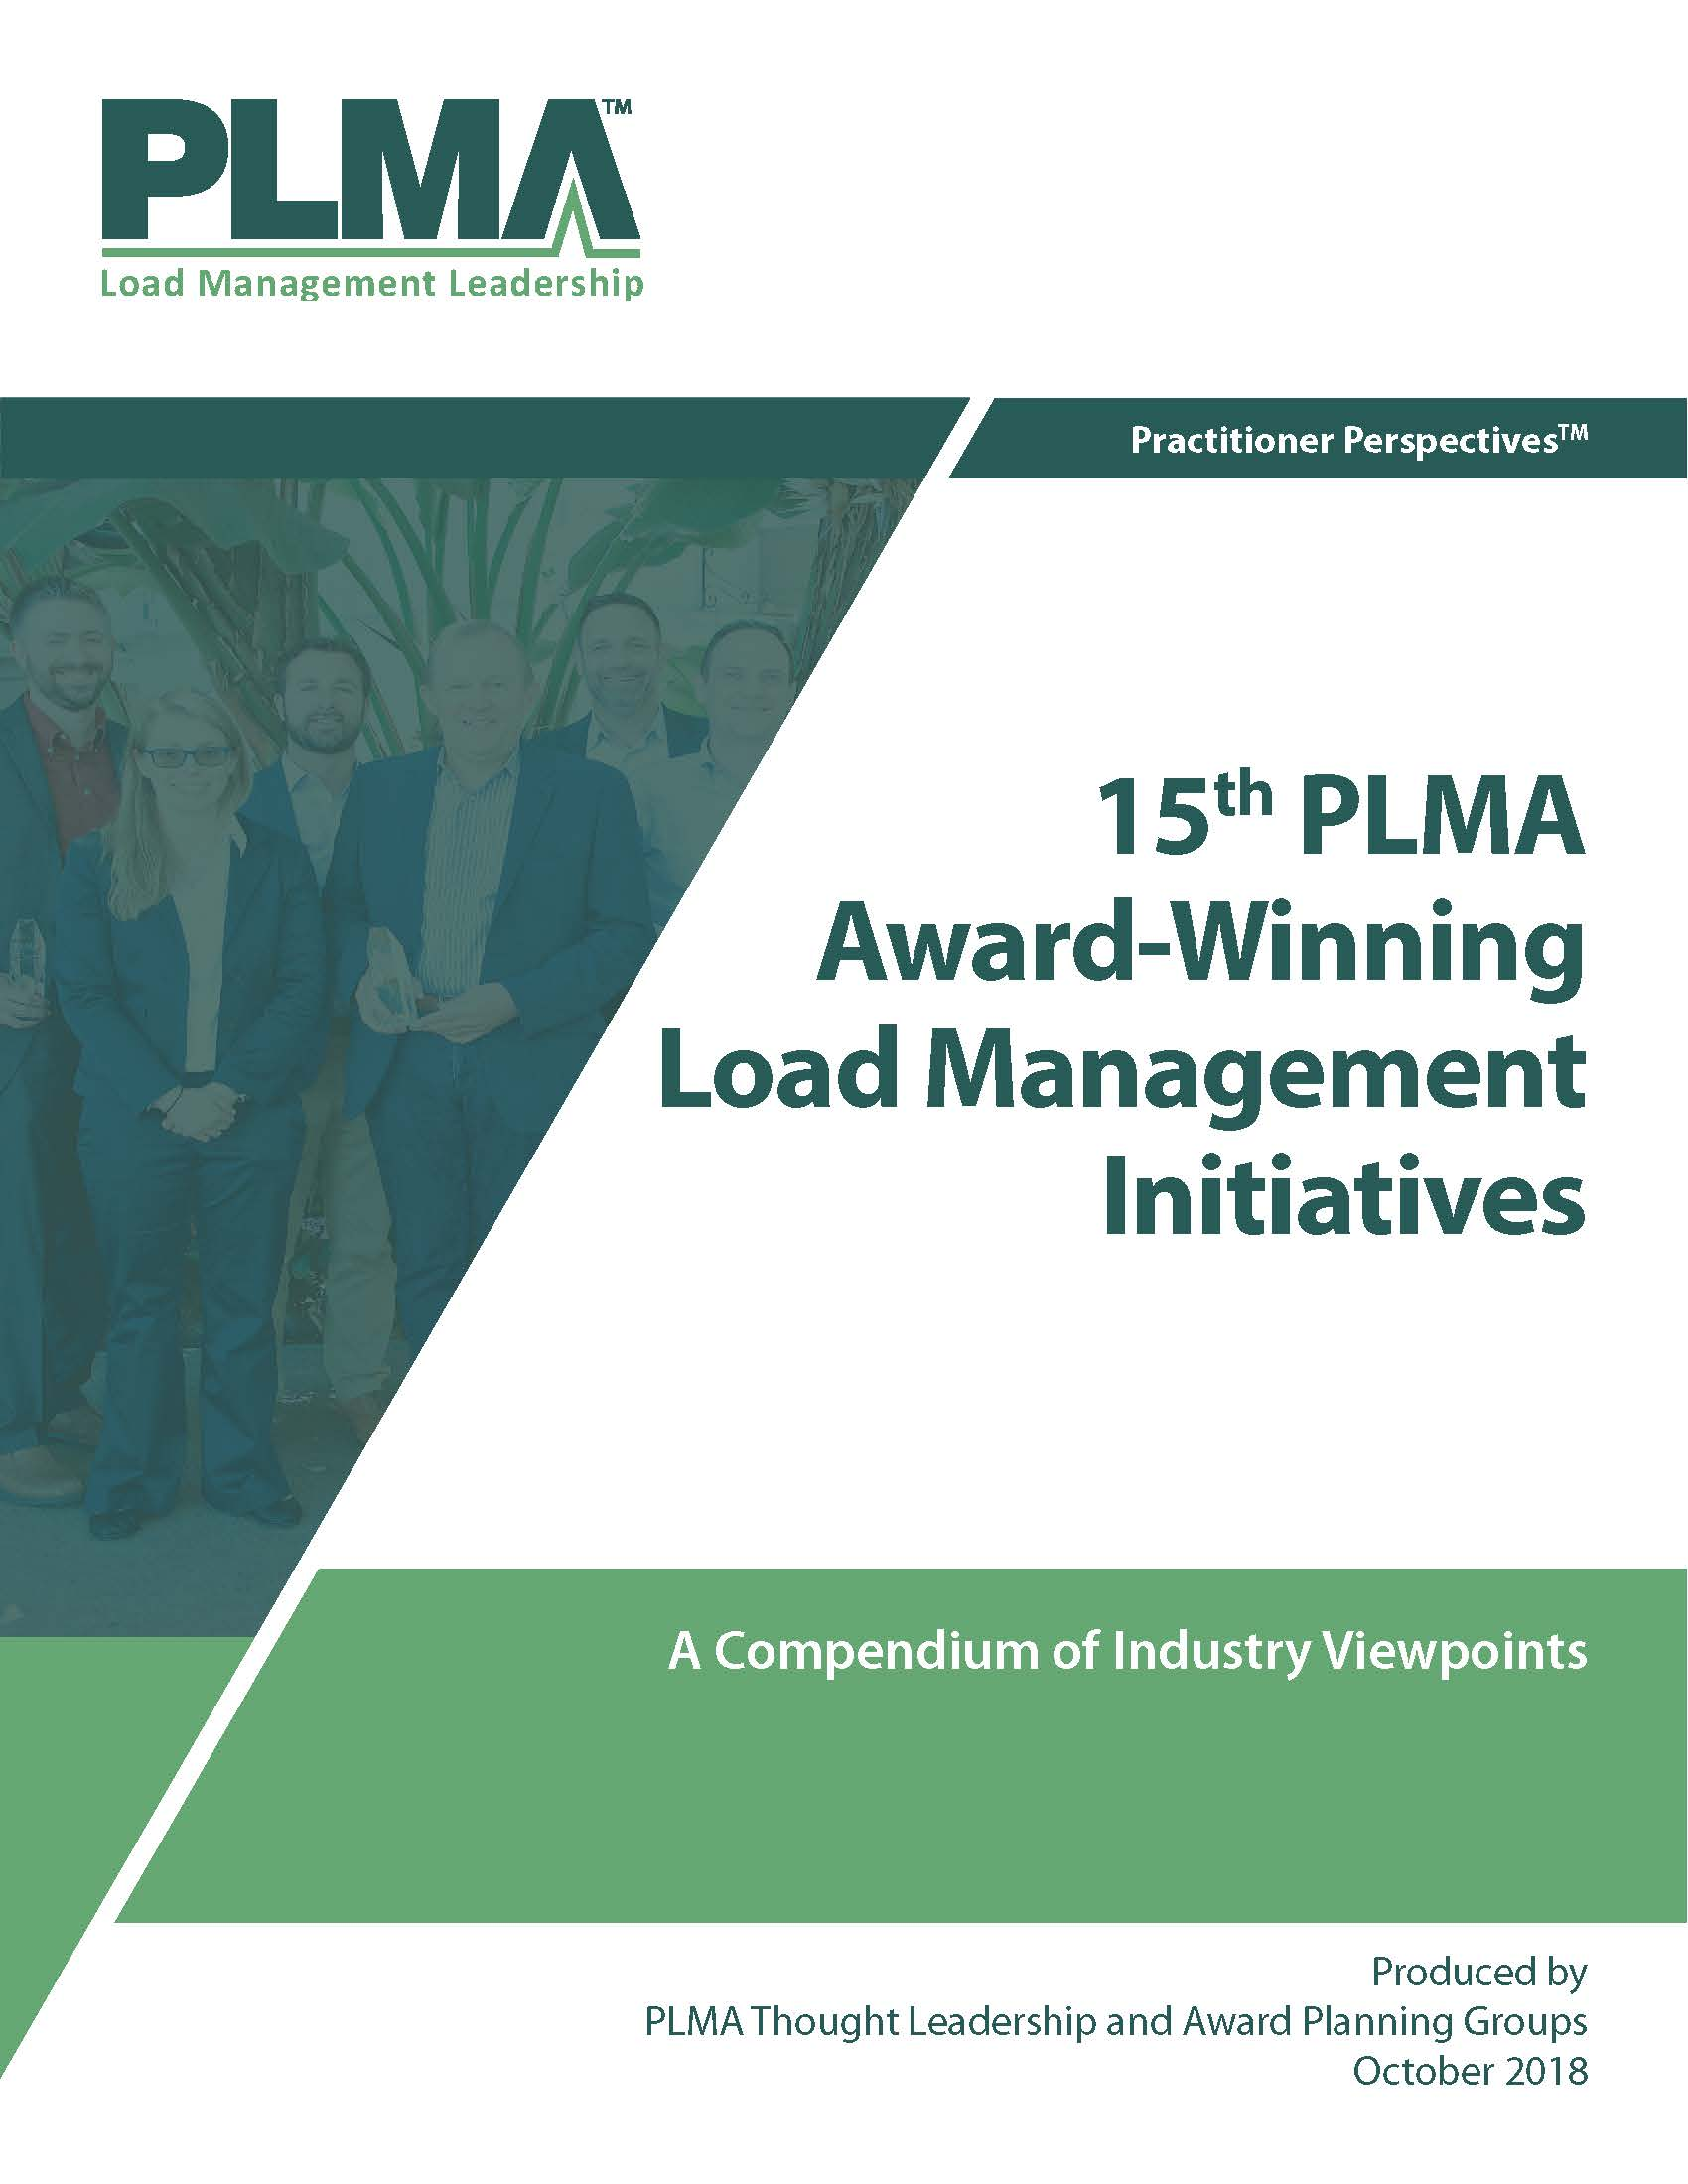 15th PLMA Award-Winning Load Management Initiatives